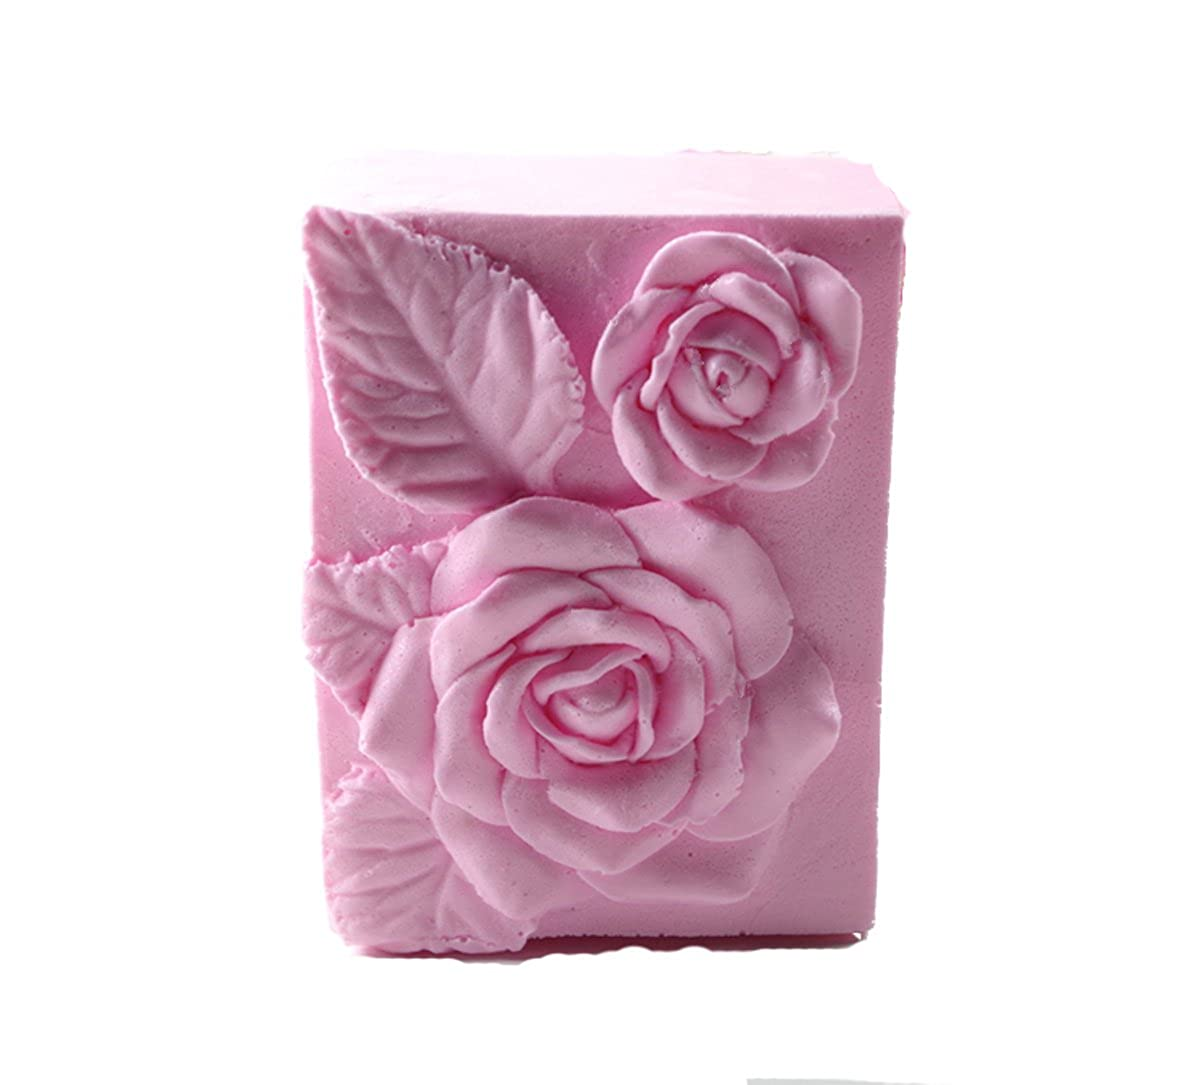 Longzang Flower Rose S442 Art Silicone Soap Craft DIY Handmade Candle Molds